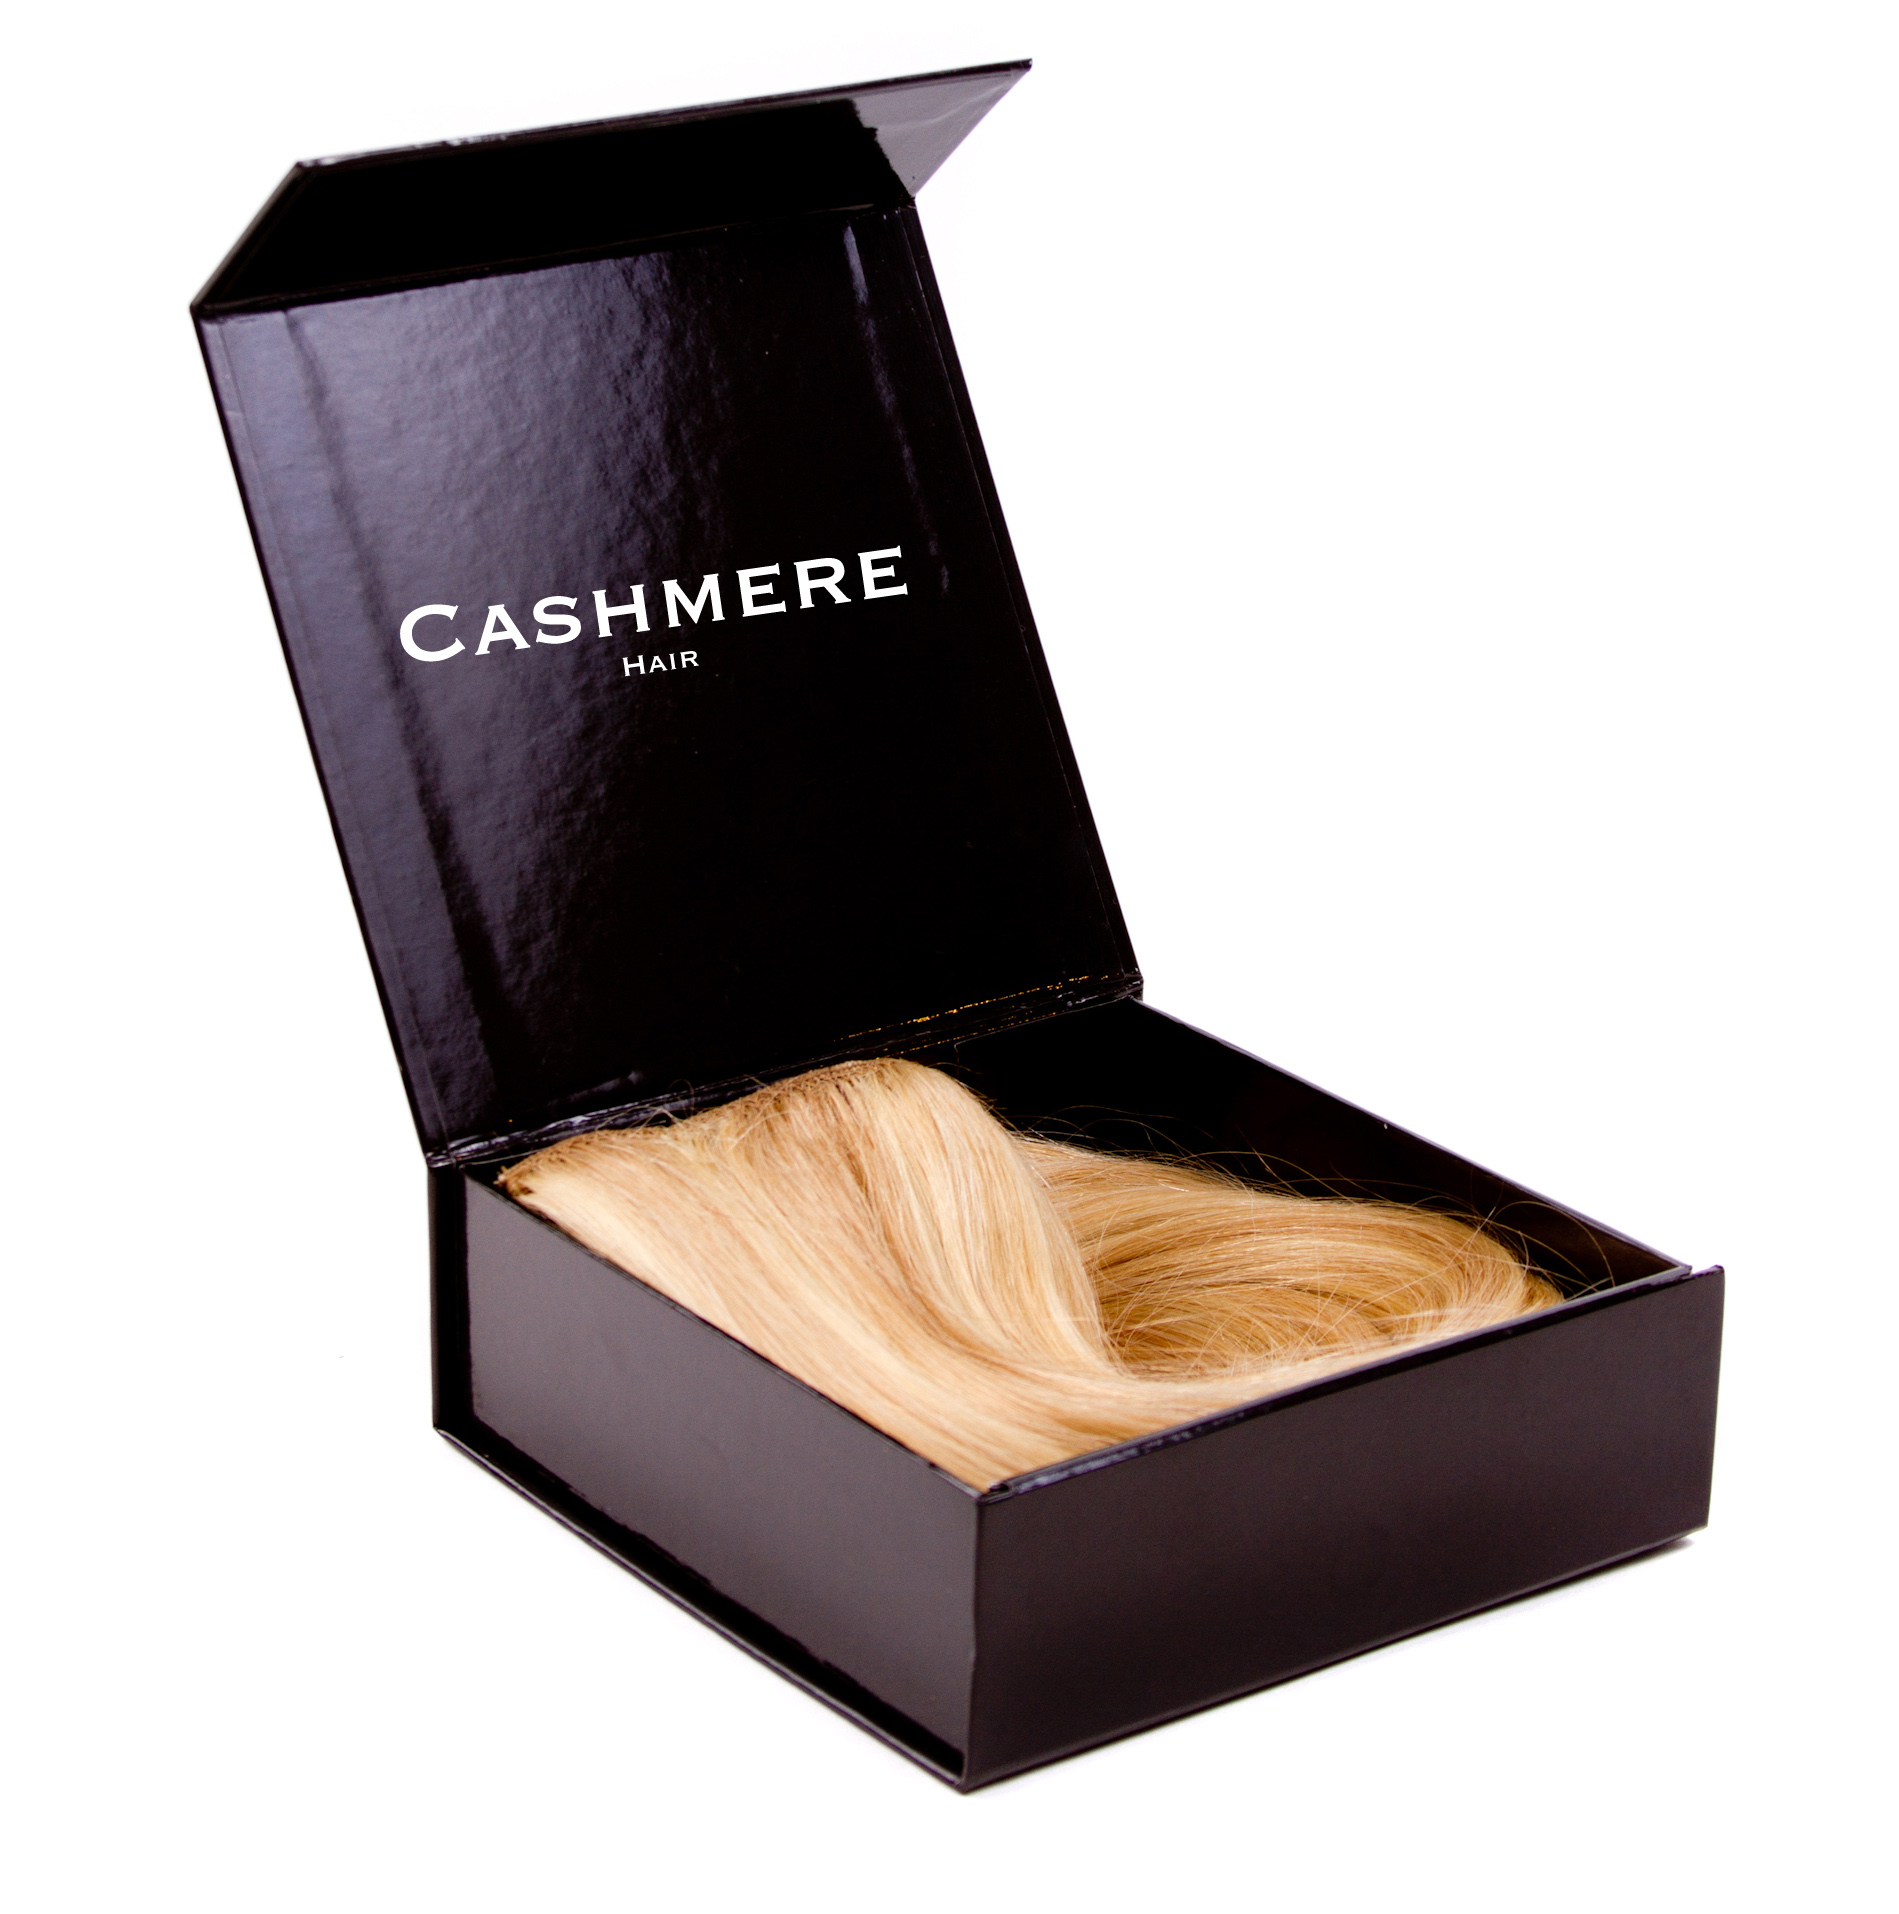 Cashmere Hair is best for travel when stored neatly in the Little Black Box.